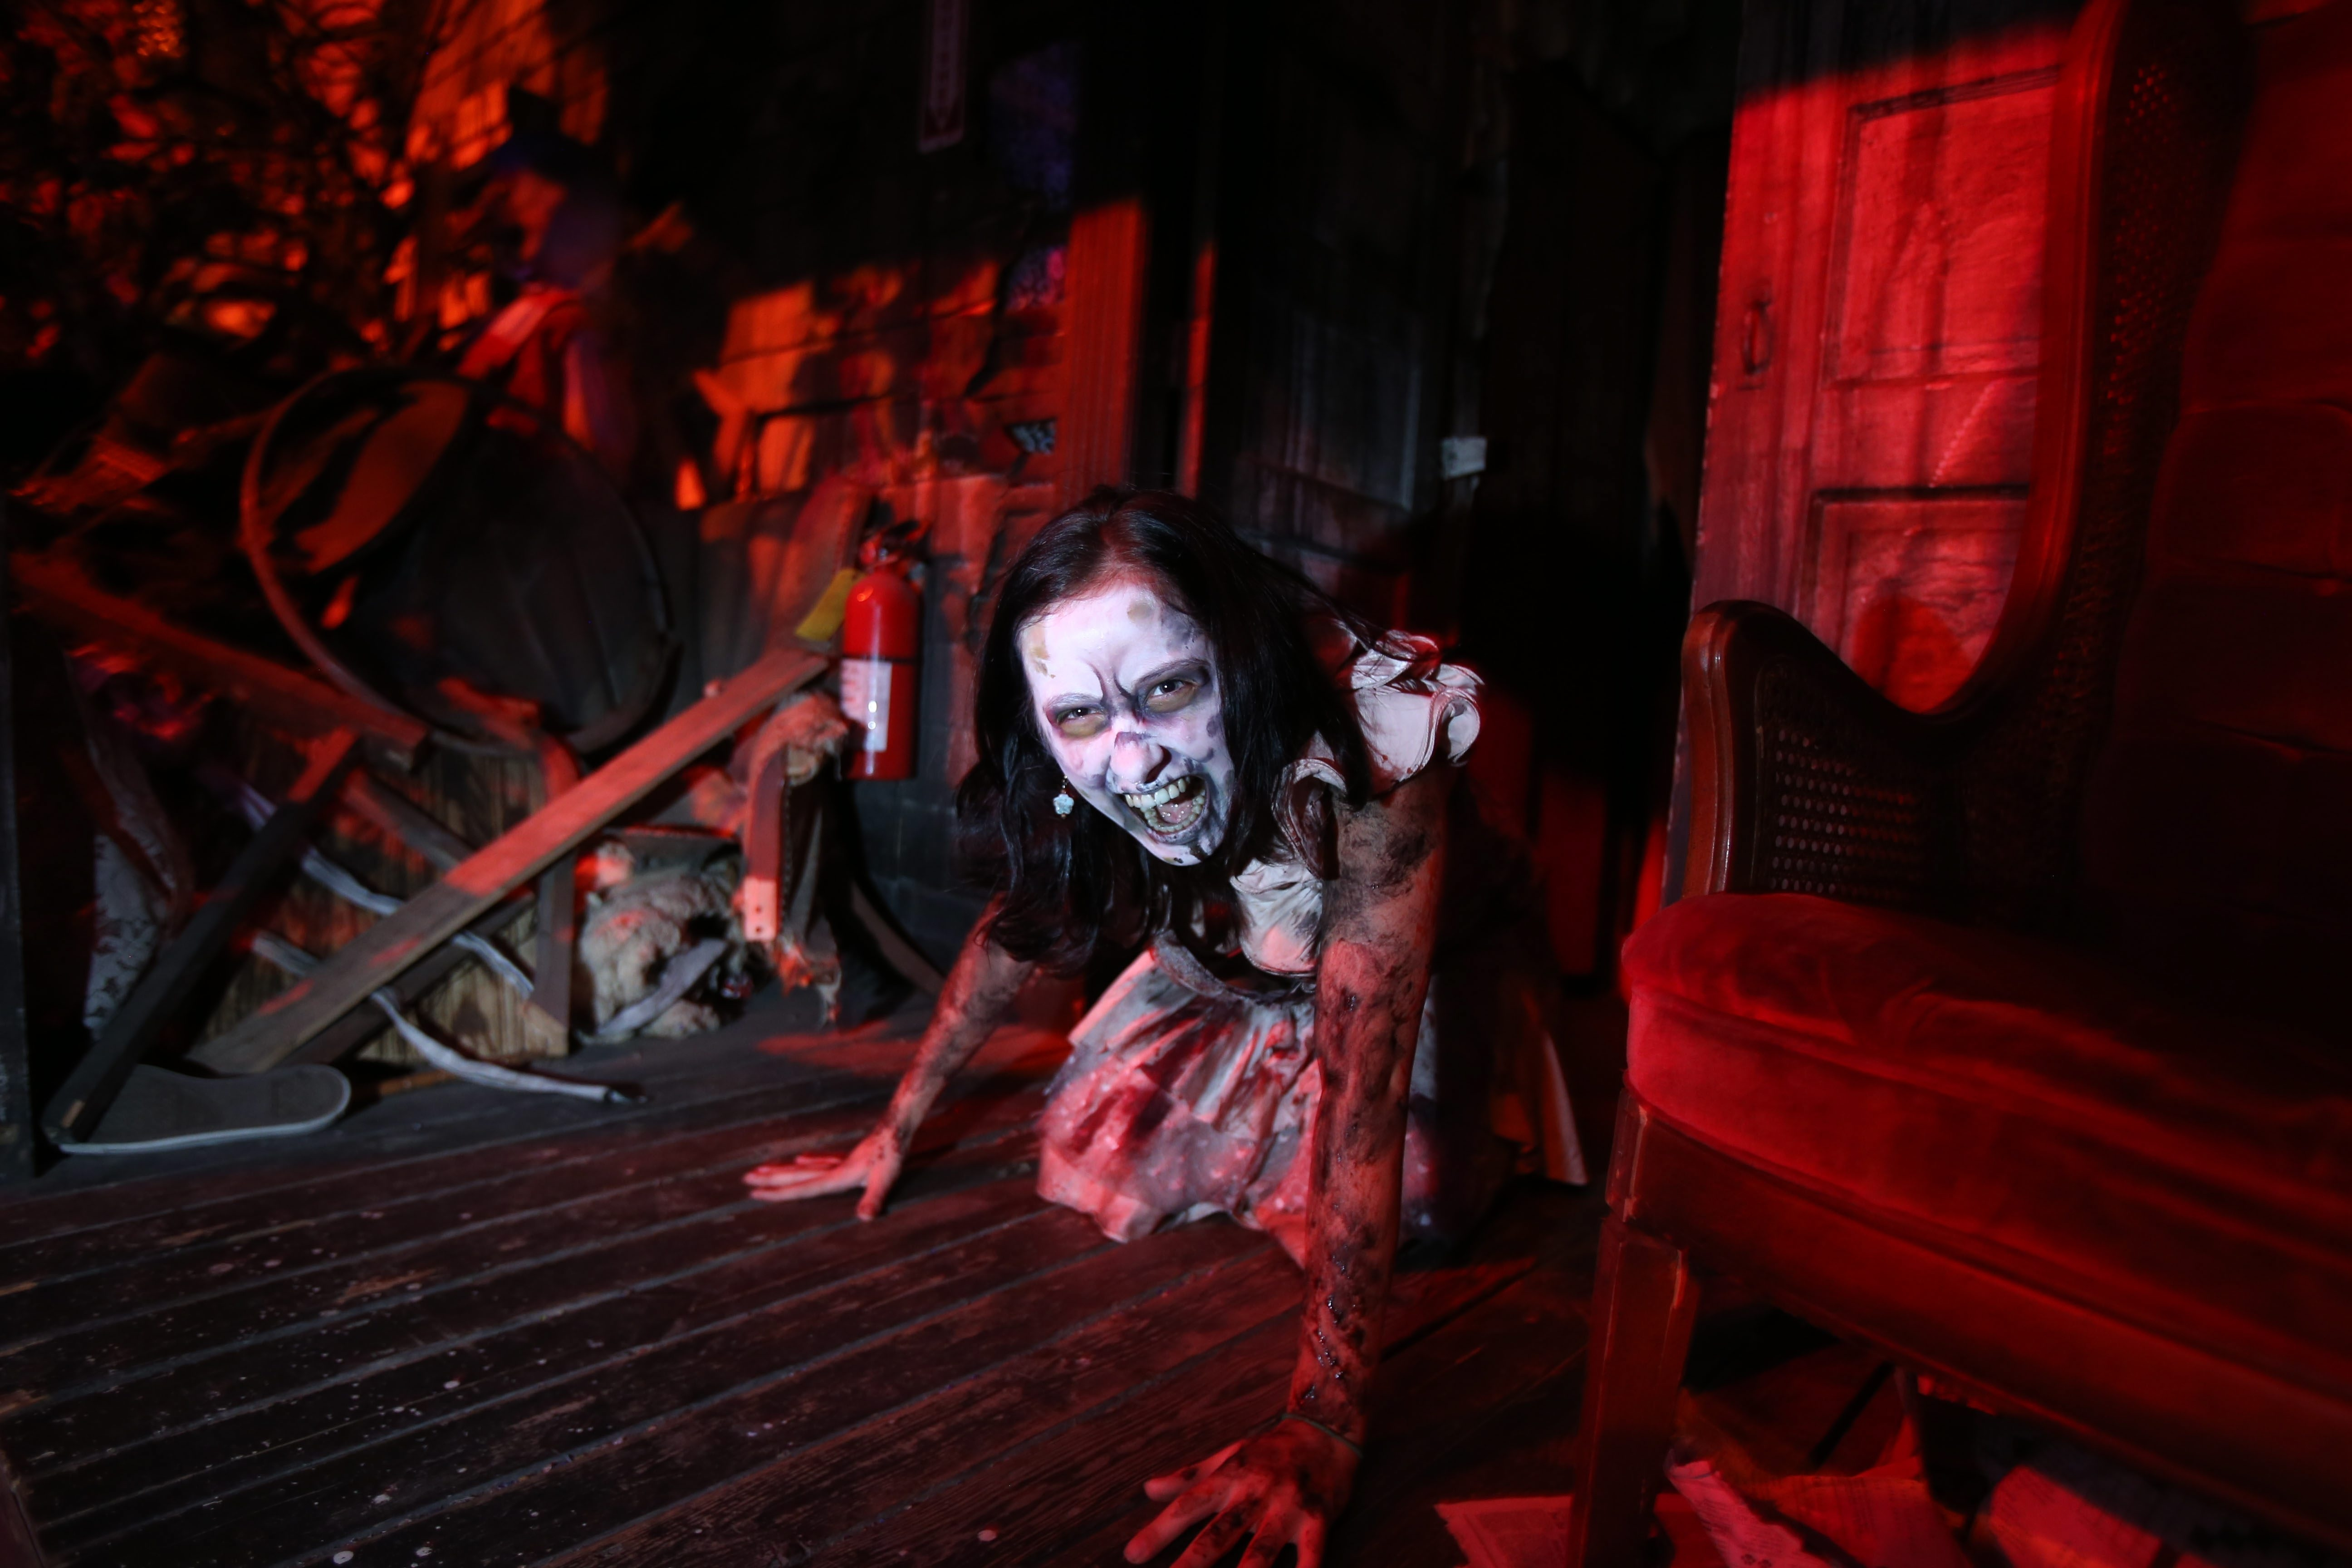 Cari Hurley, 17, gets in character for her job posing as a scary young girl named Dolly at Frightworld in Tonawanda.